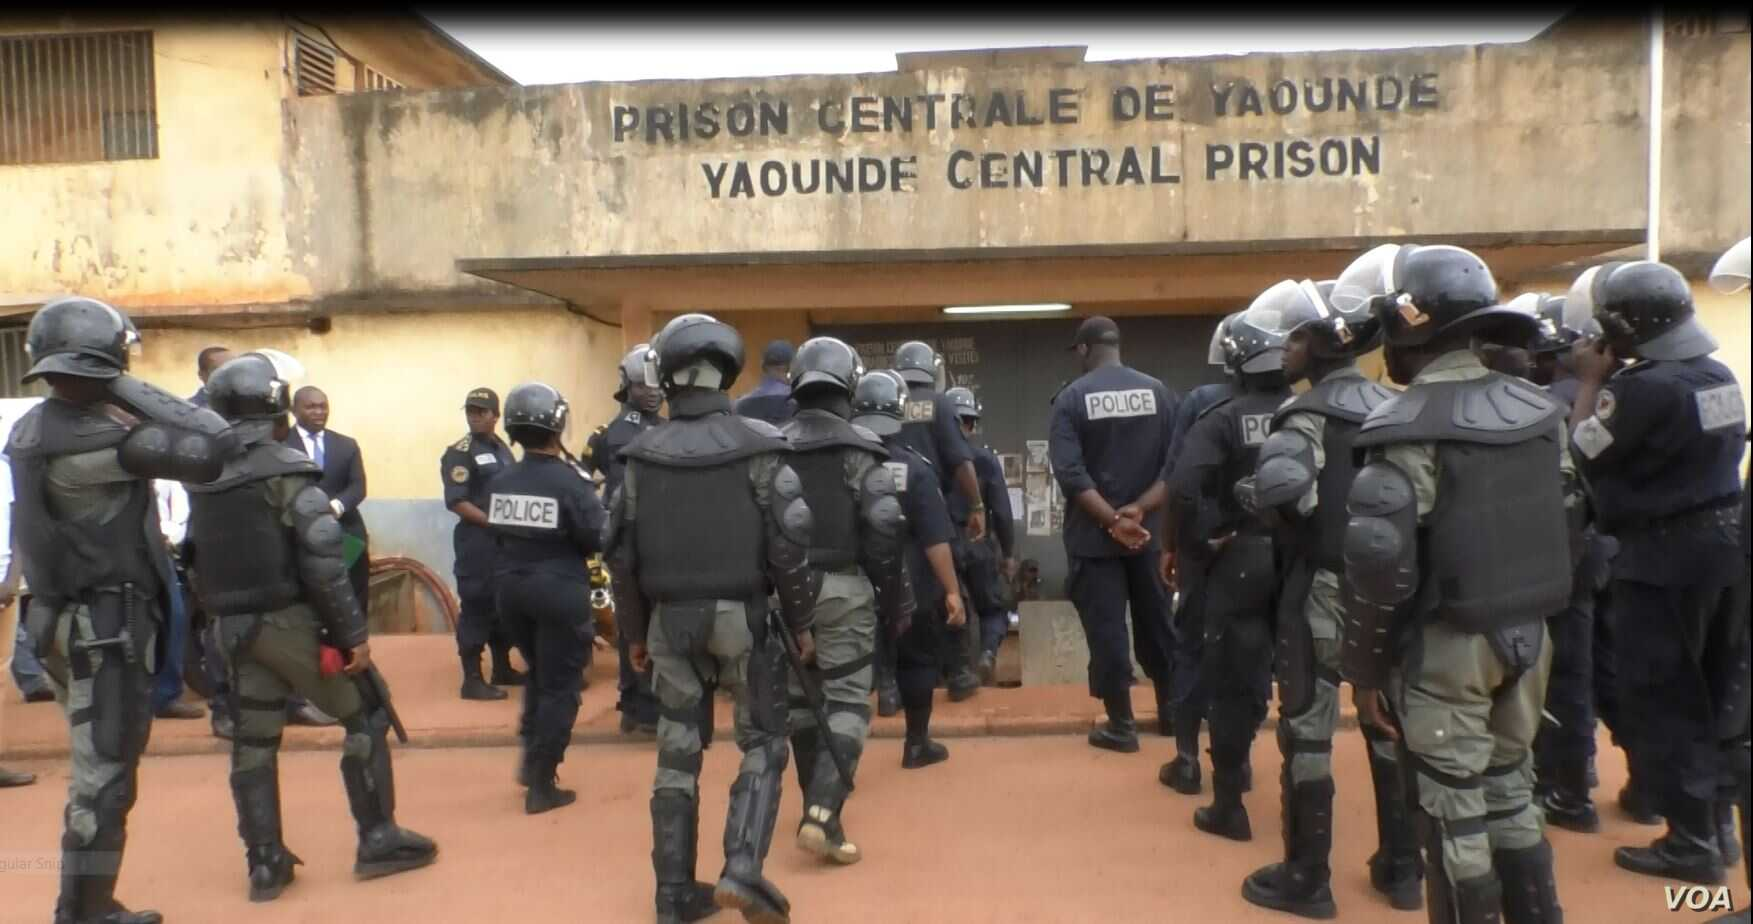 Deployment of the police at the Kondengui Central Prison, Yaounde, Cameroon, July 23, 2019. ( M. Kindzeka, VOA)